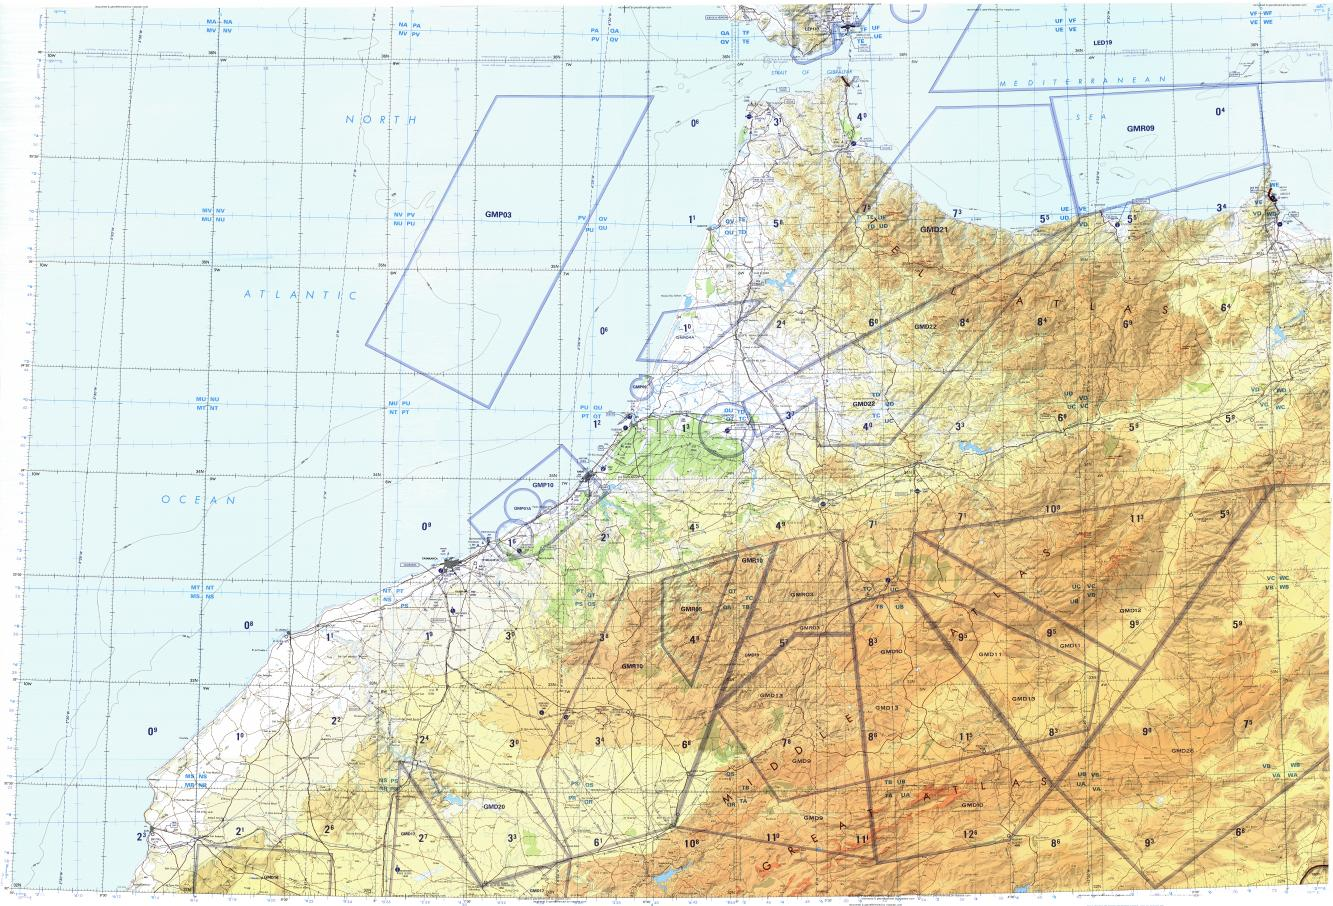 Download topographic map in area of Casablanca Fes Rabat mapstorcom